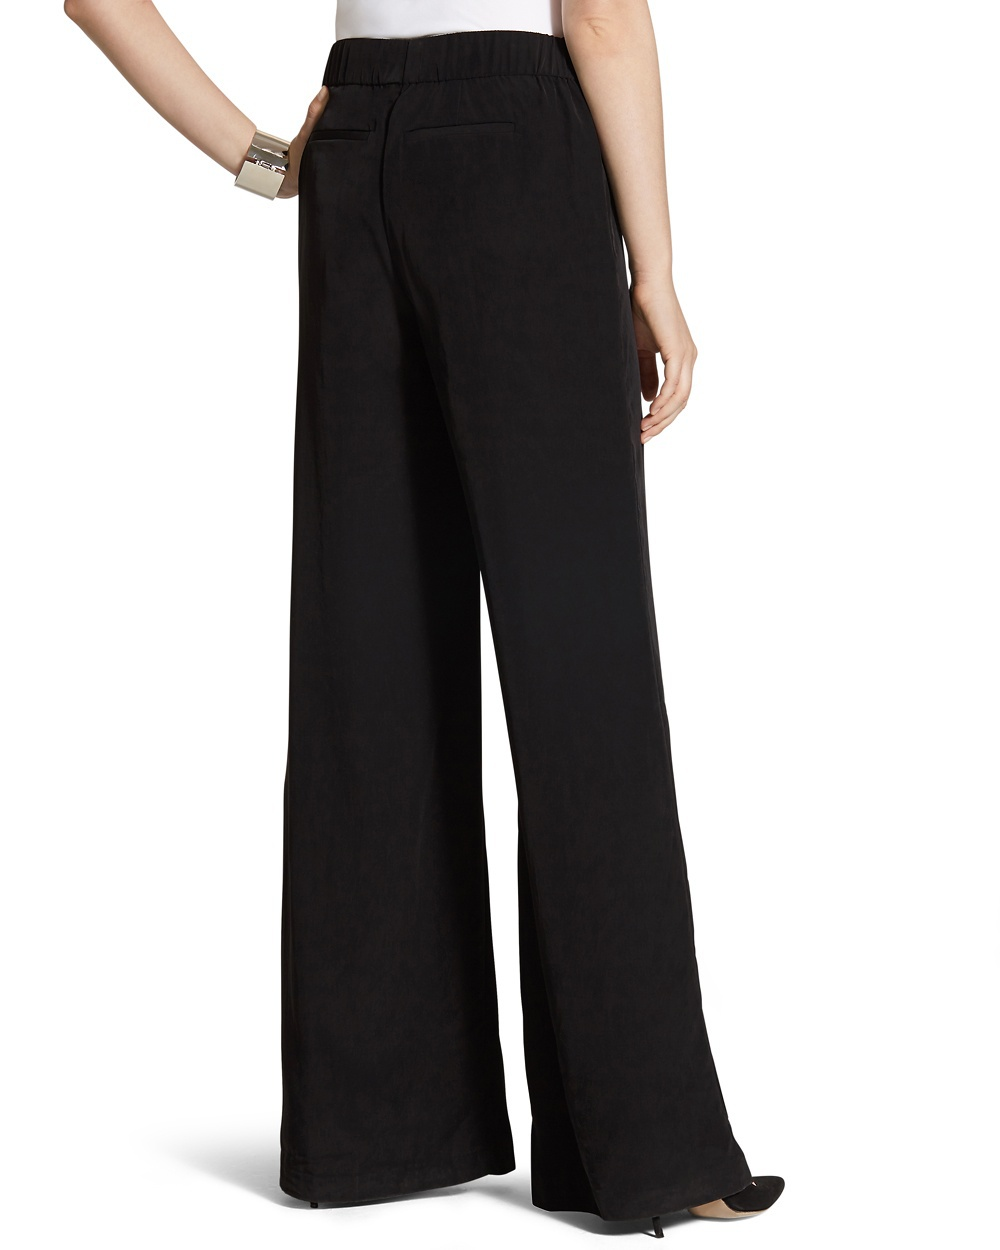 teraisompcz8d.ga offers cheap palazzo pants at wholesale prices, so you can shop from a huge selection of cheap palazzo pants, FREE Shipping available worldwide.